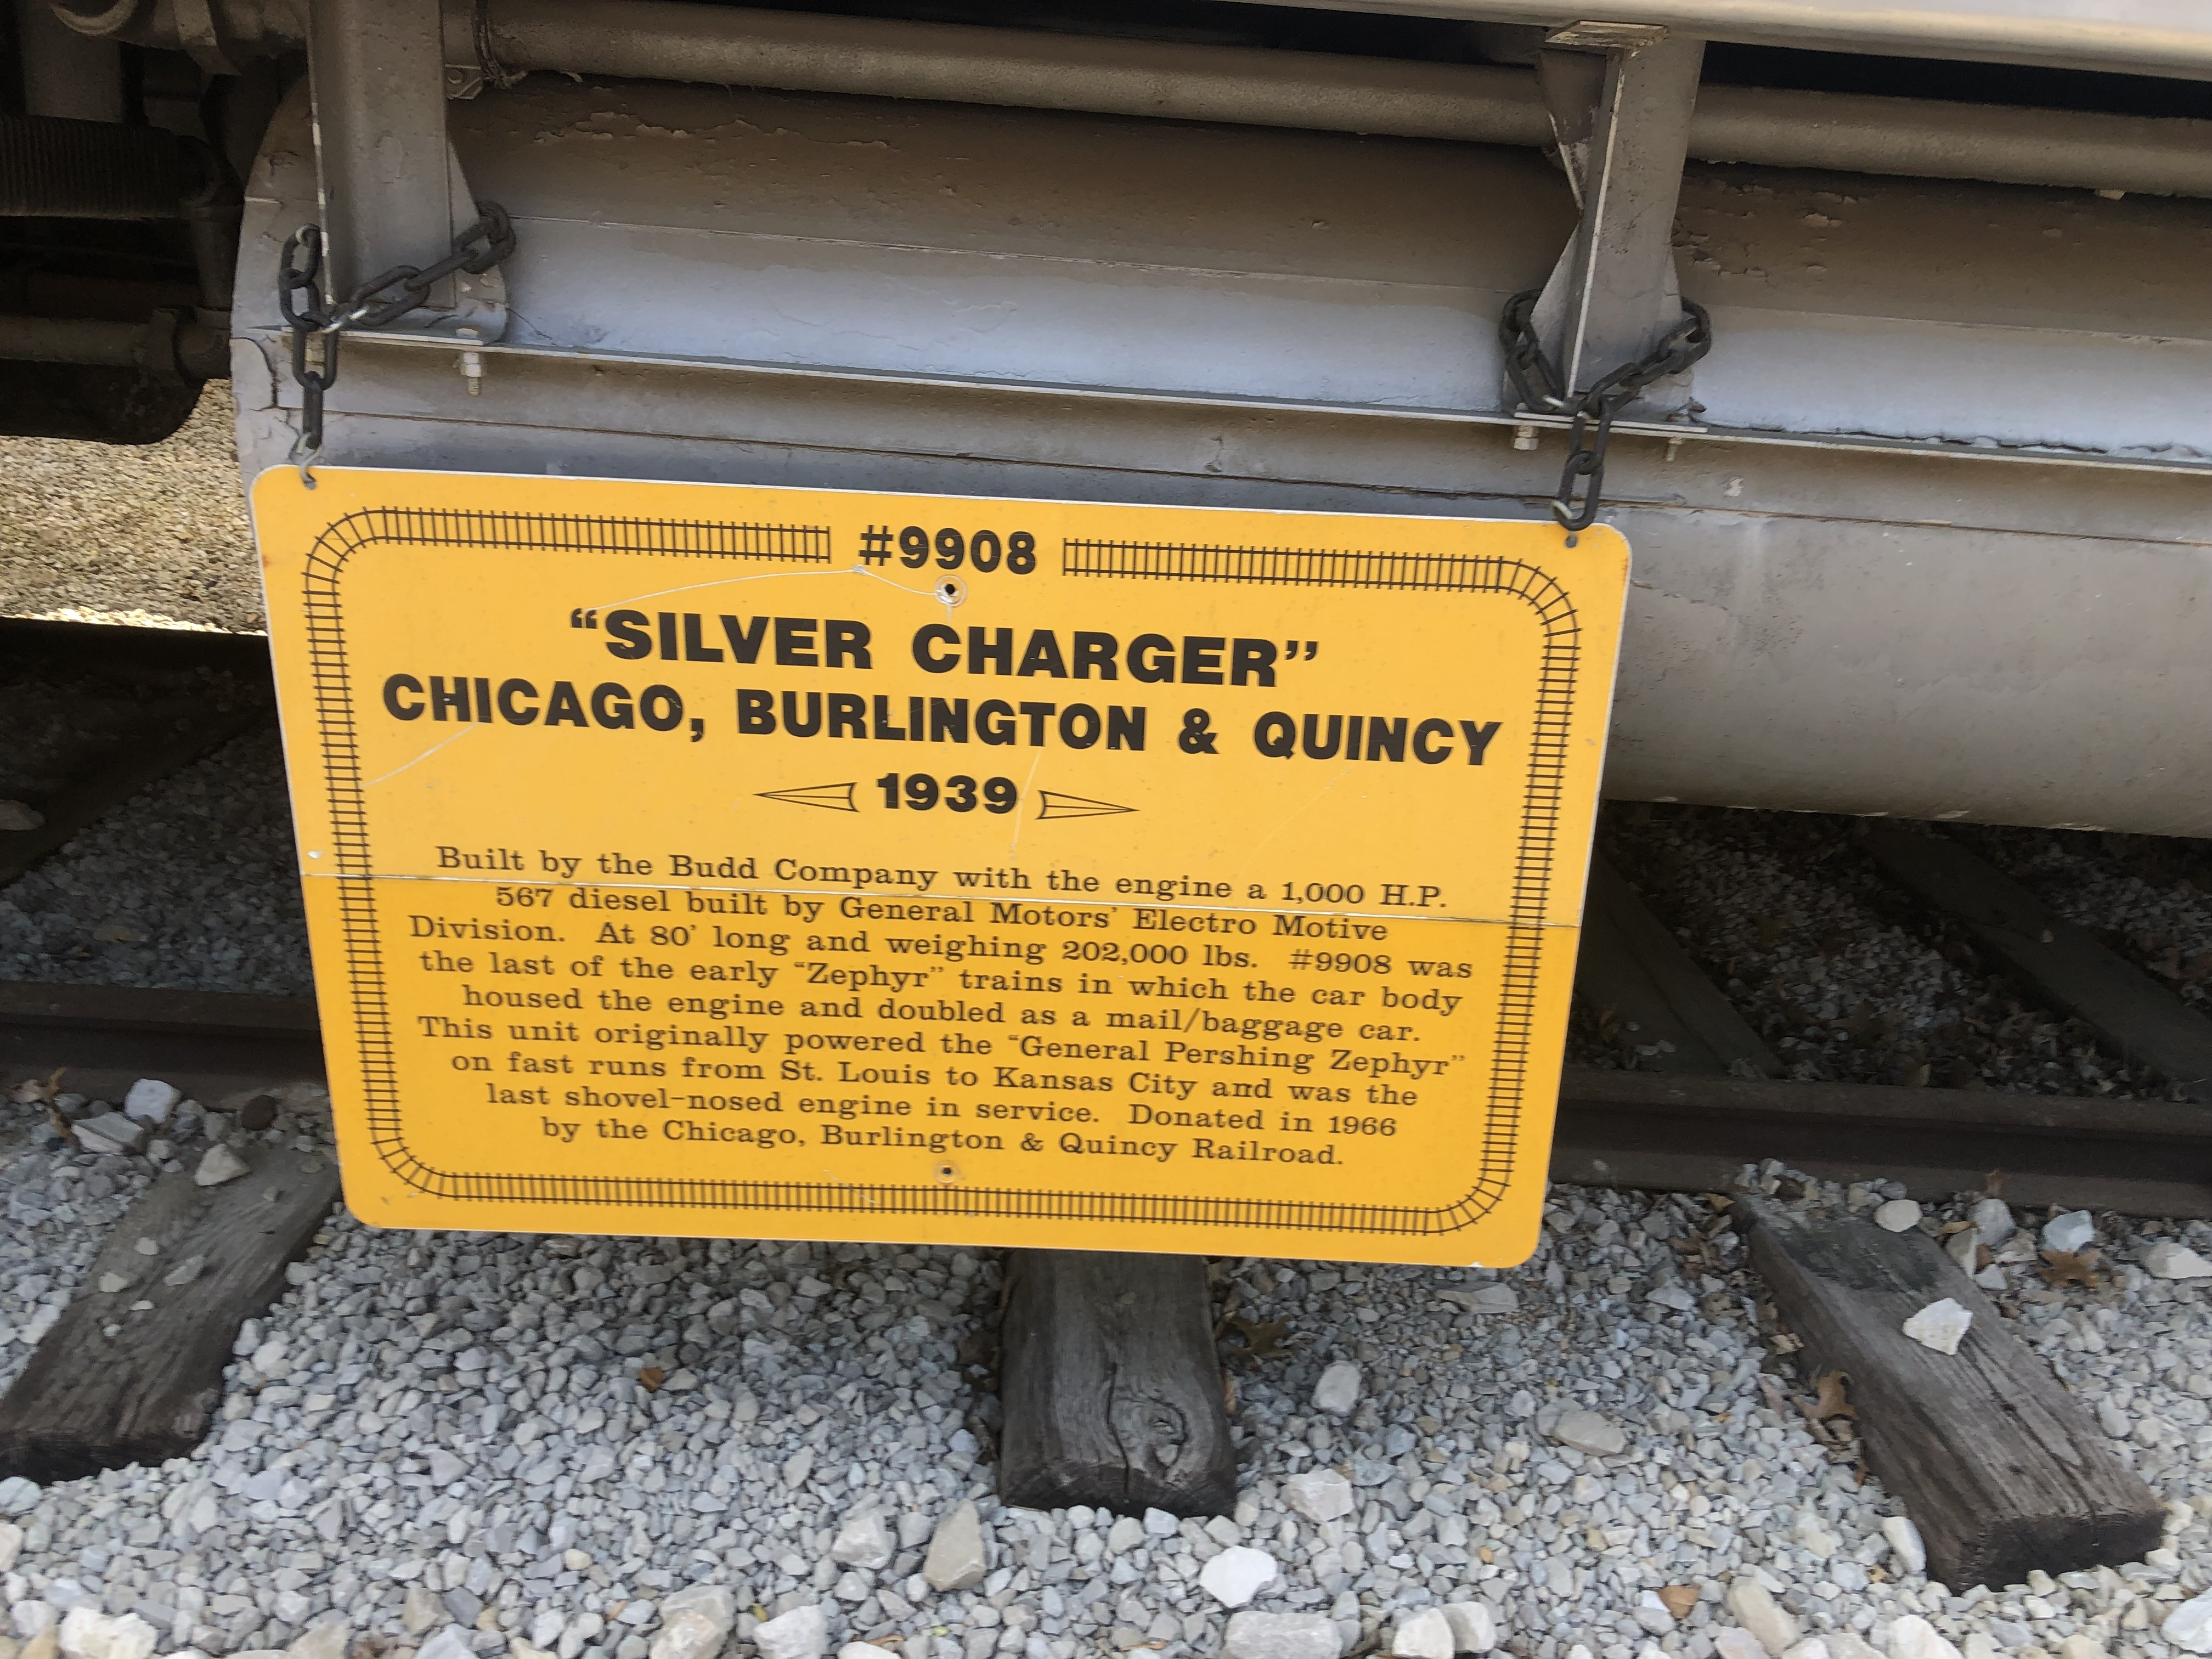 "#9908 ""Silver Charger"" Marker"